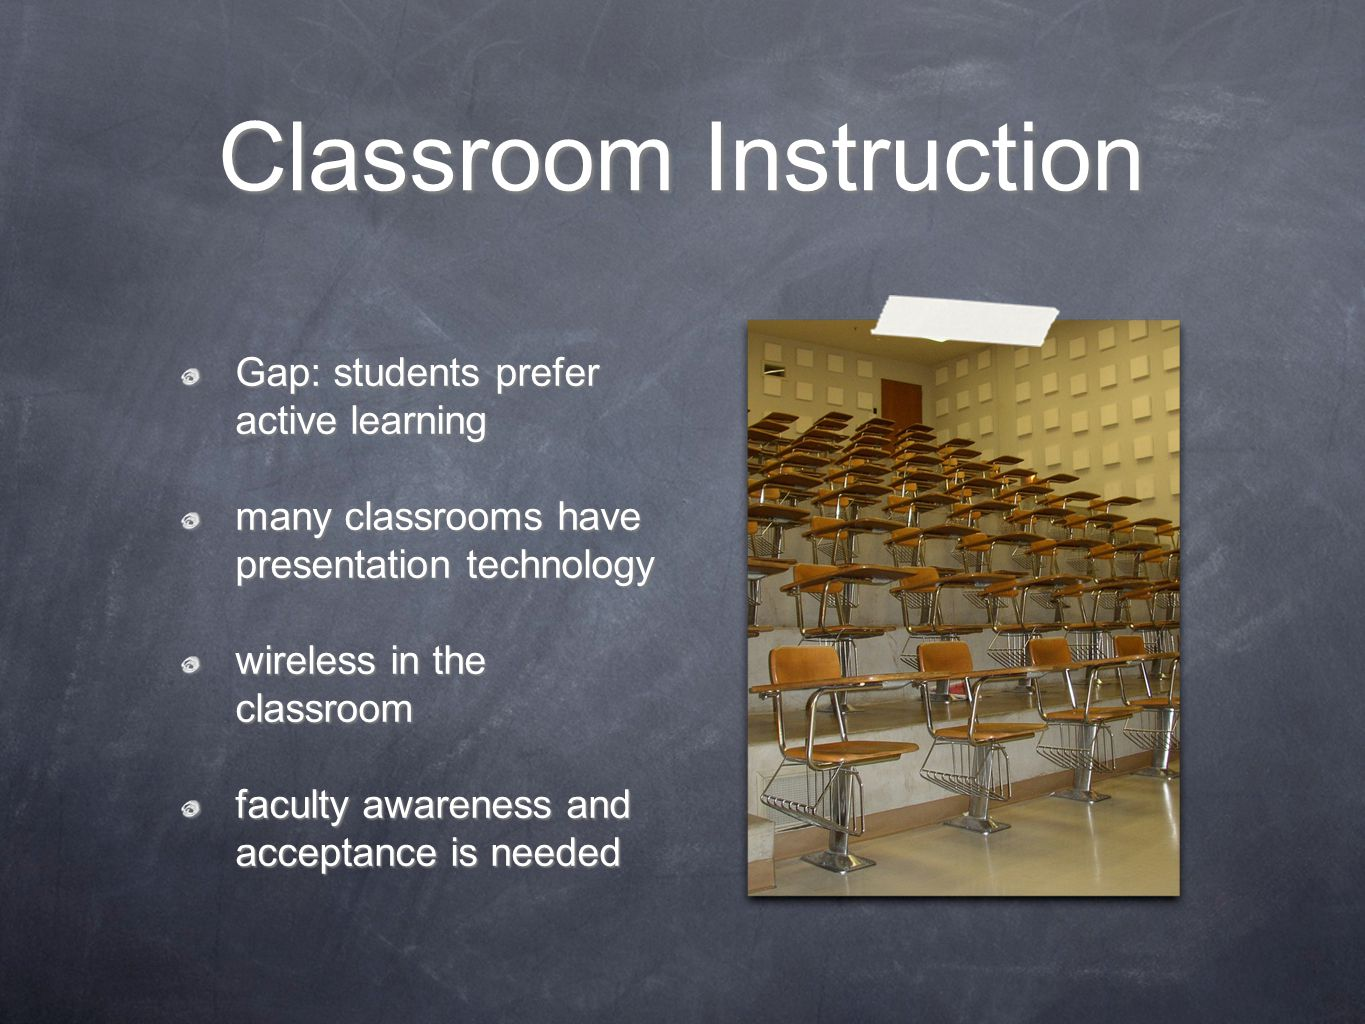 Classroom Instruction Gap: students prefer active learning many classrooms have presentation technology wireless in the classroom faculty awareness and acceptance is needed